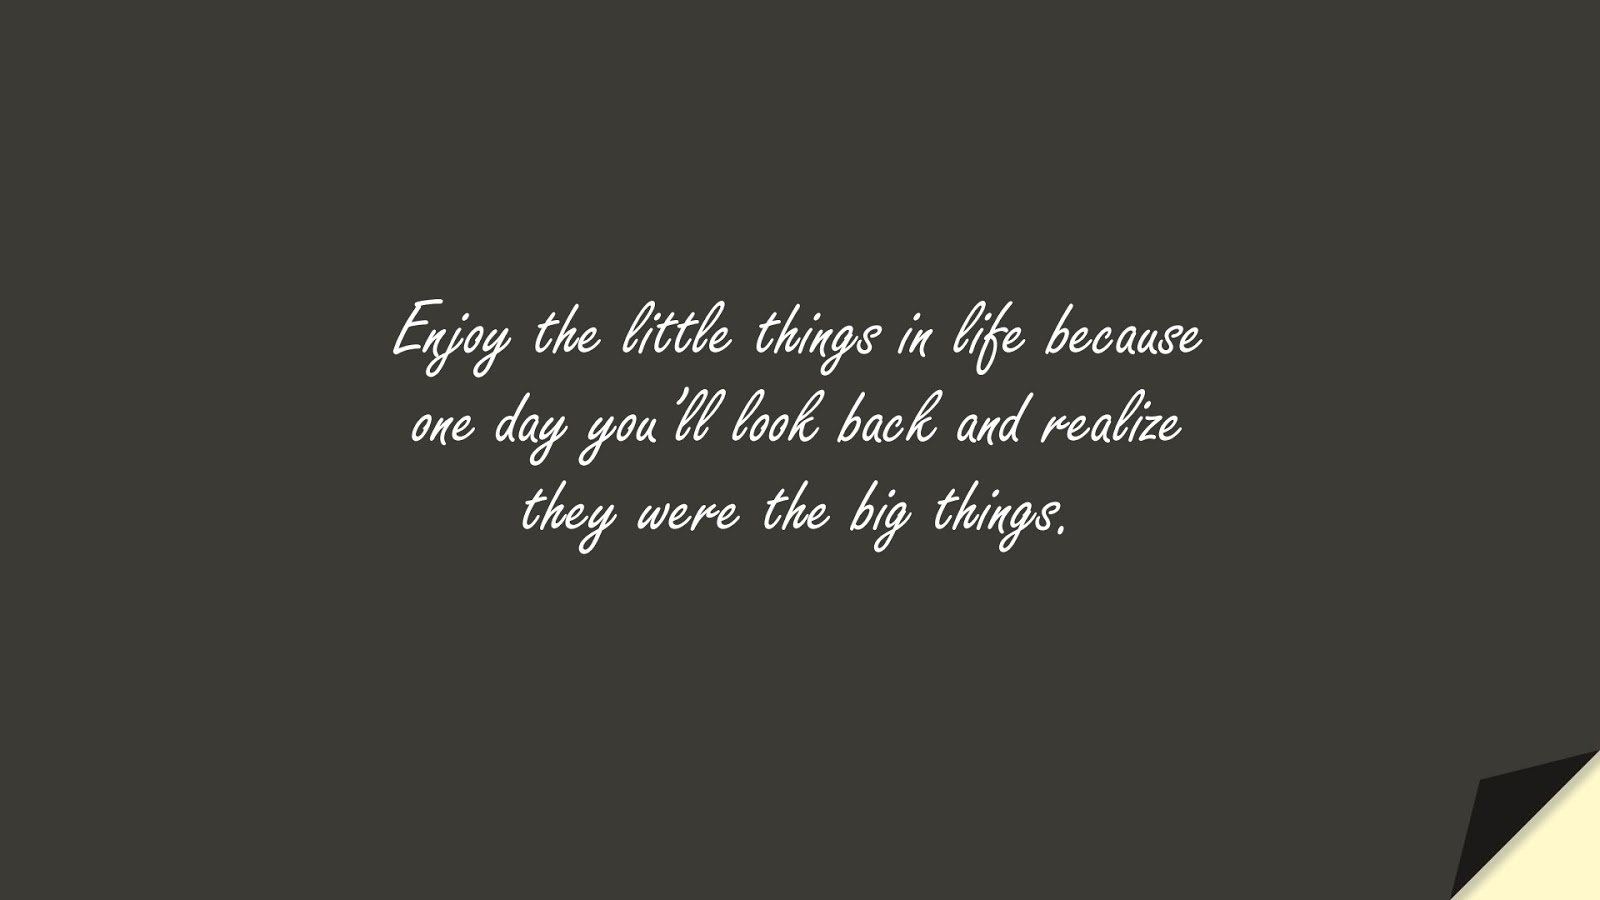 Enjoy the little things in life because one day you'll look back and realize they were the big things.FALSE